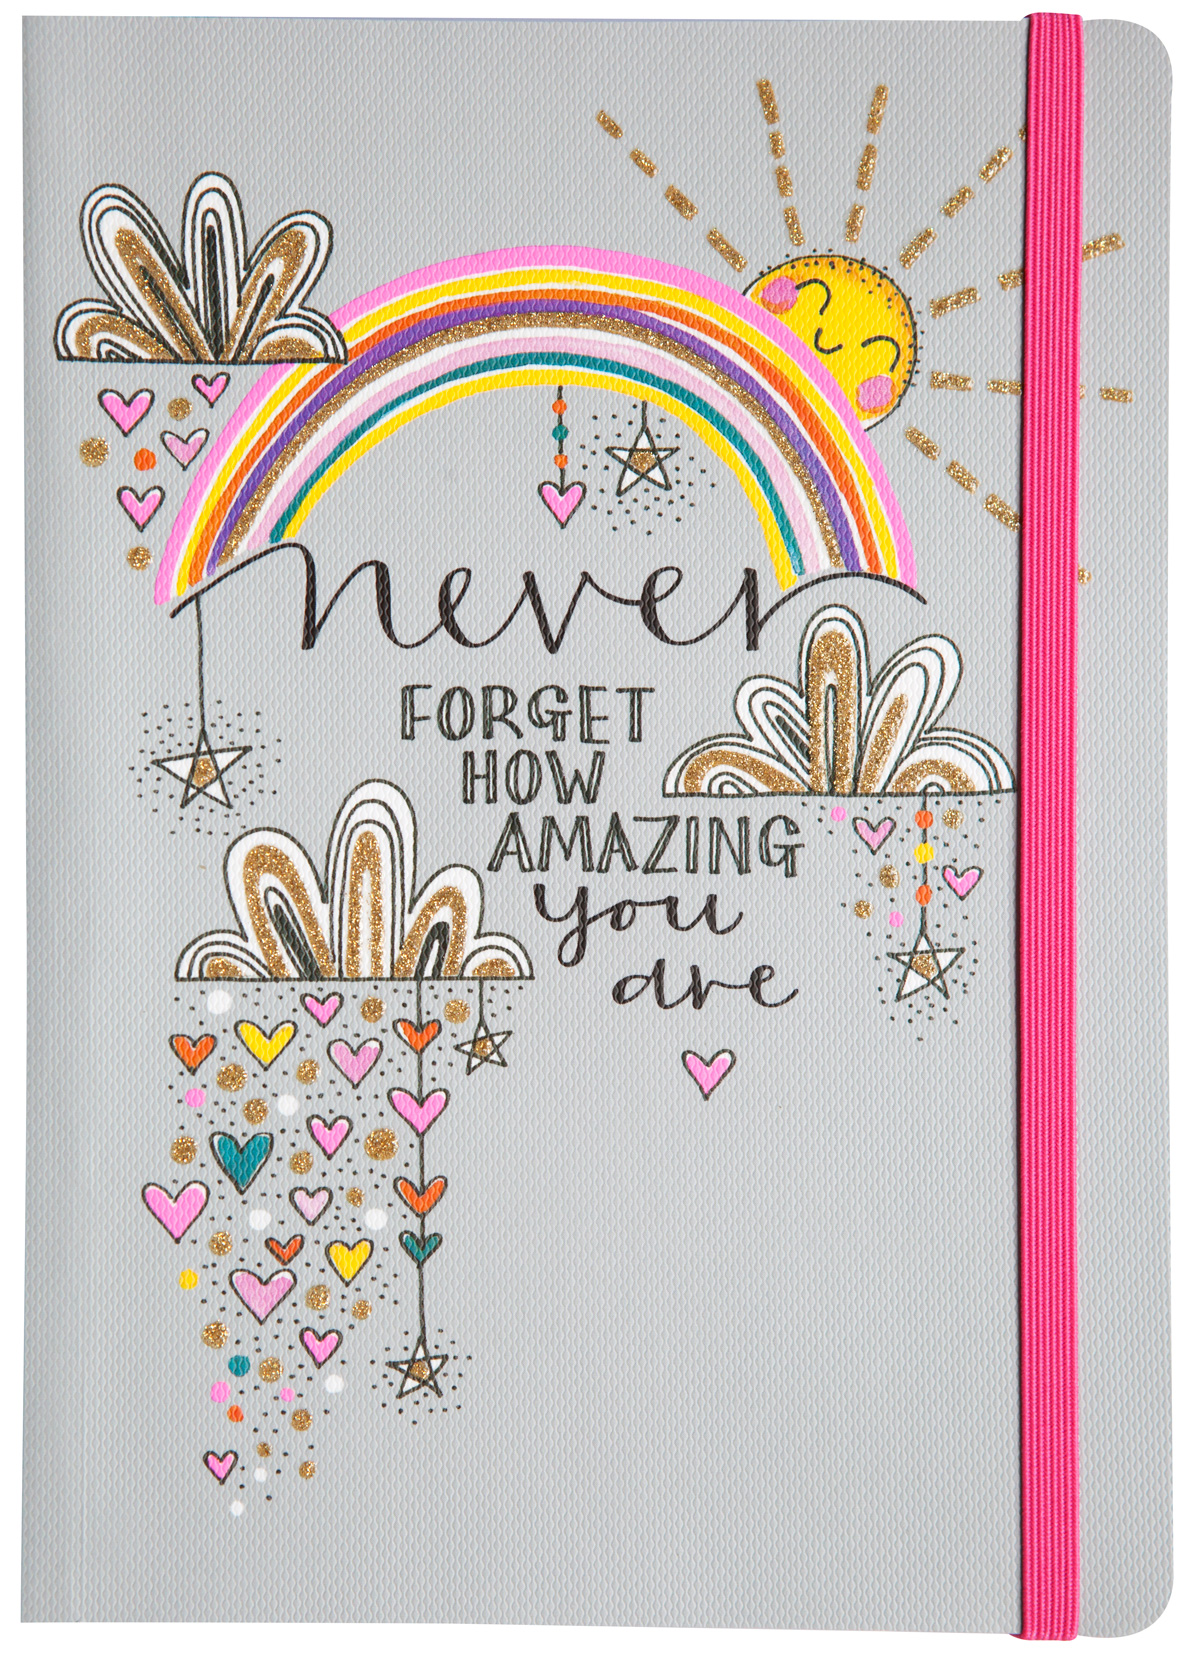 How Amazing You Are Notebook